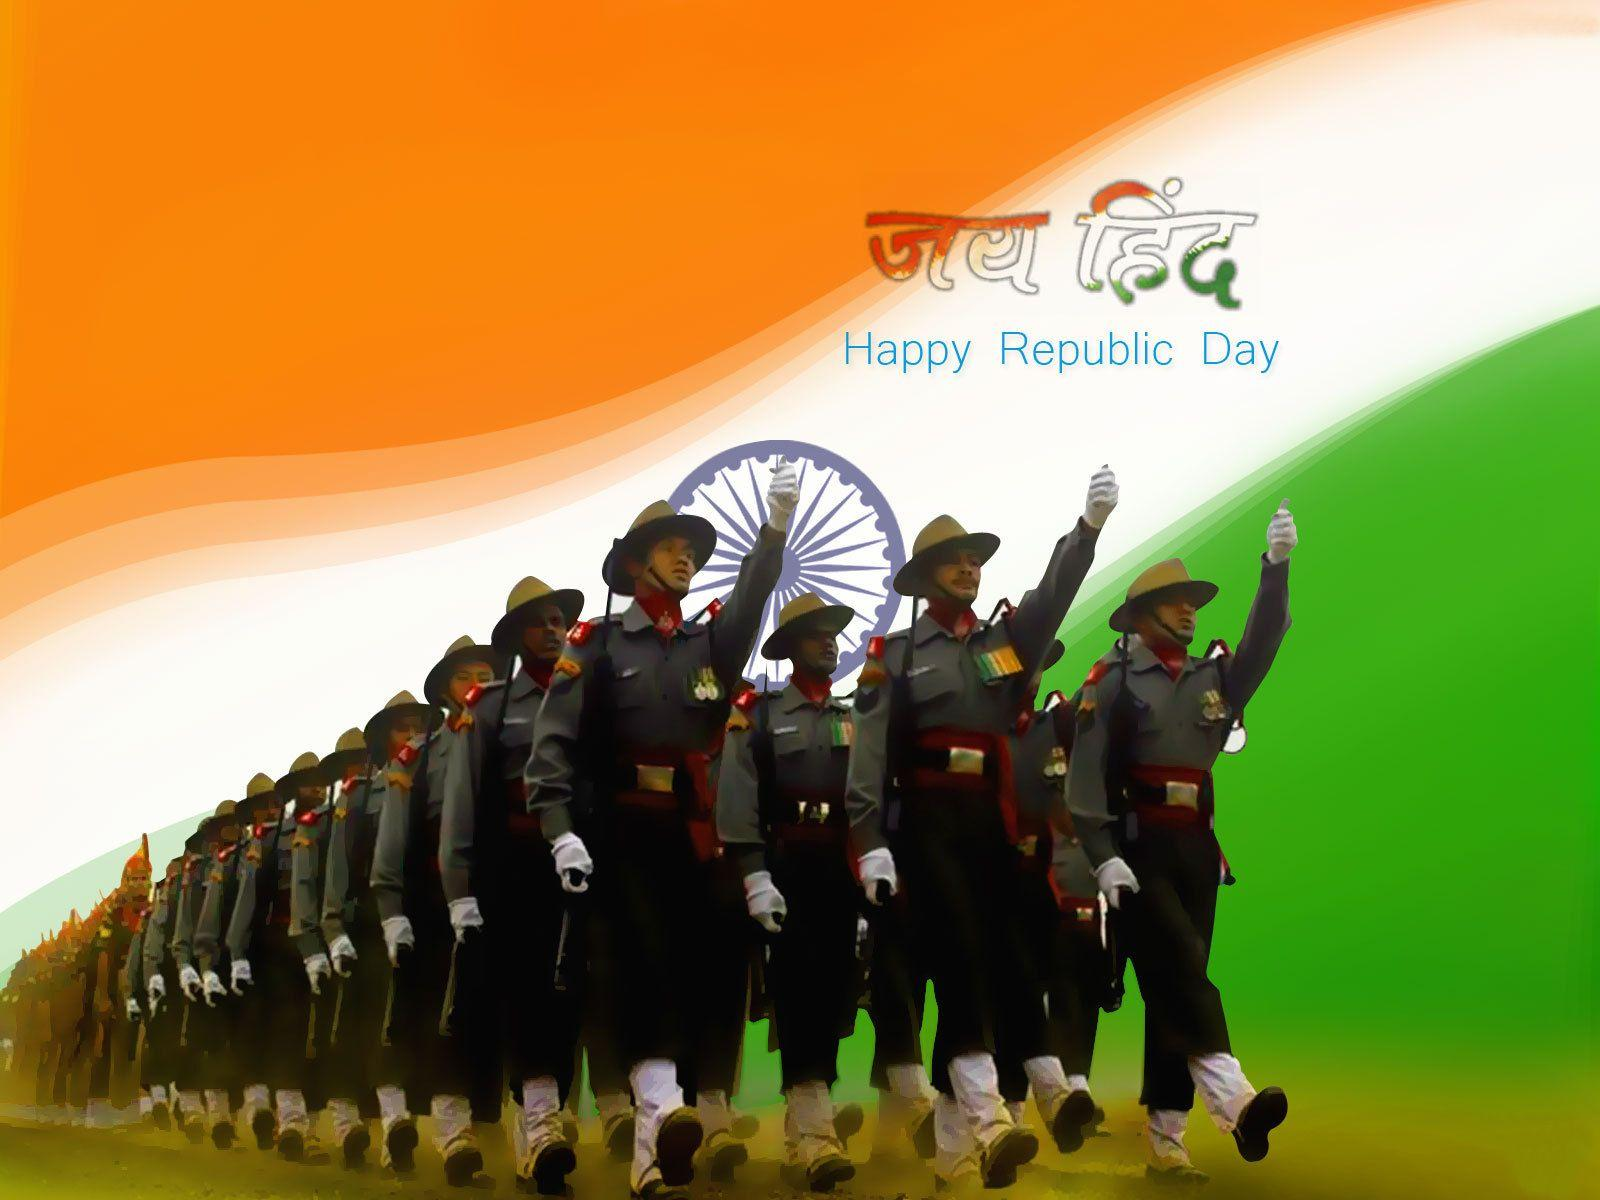 happy-independence-day-2015-hd-wallpaper-2015 | Indian Independence